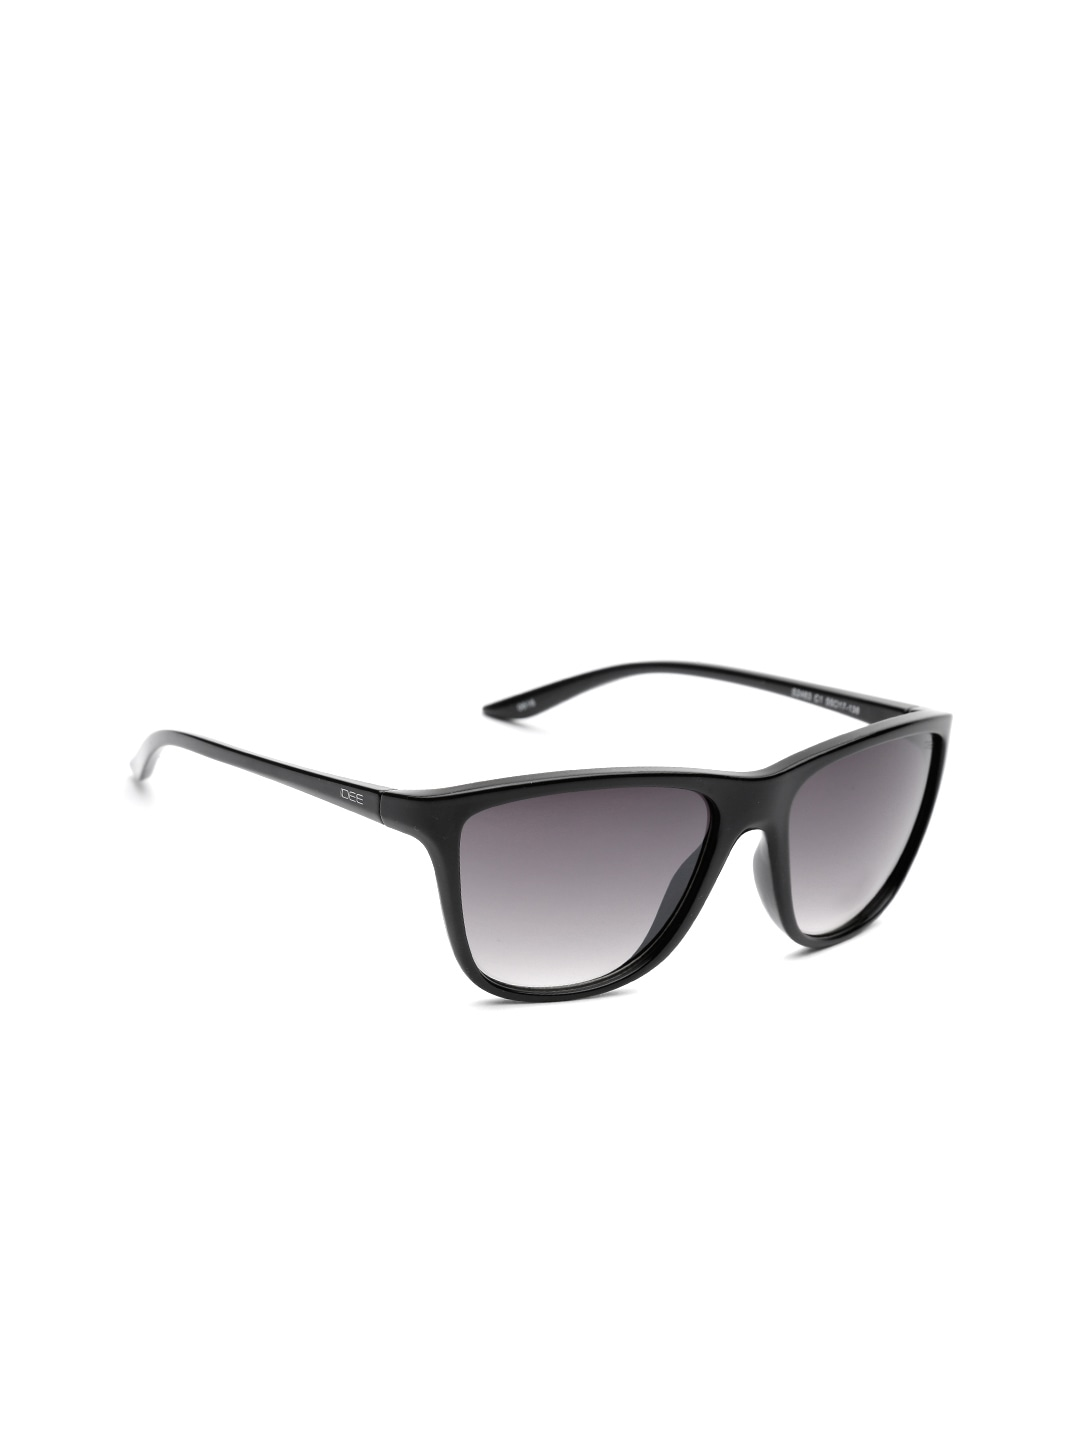 648243cda2 Sunglasses - Buy Sunglasses for Men and Women Online in India